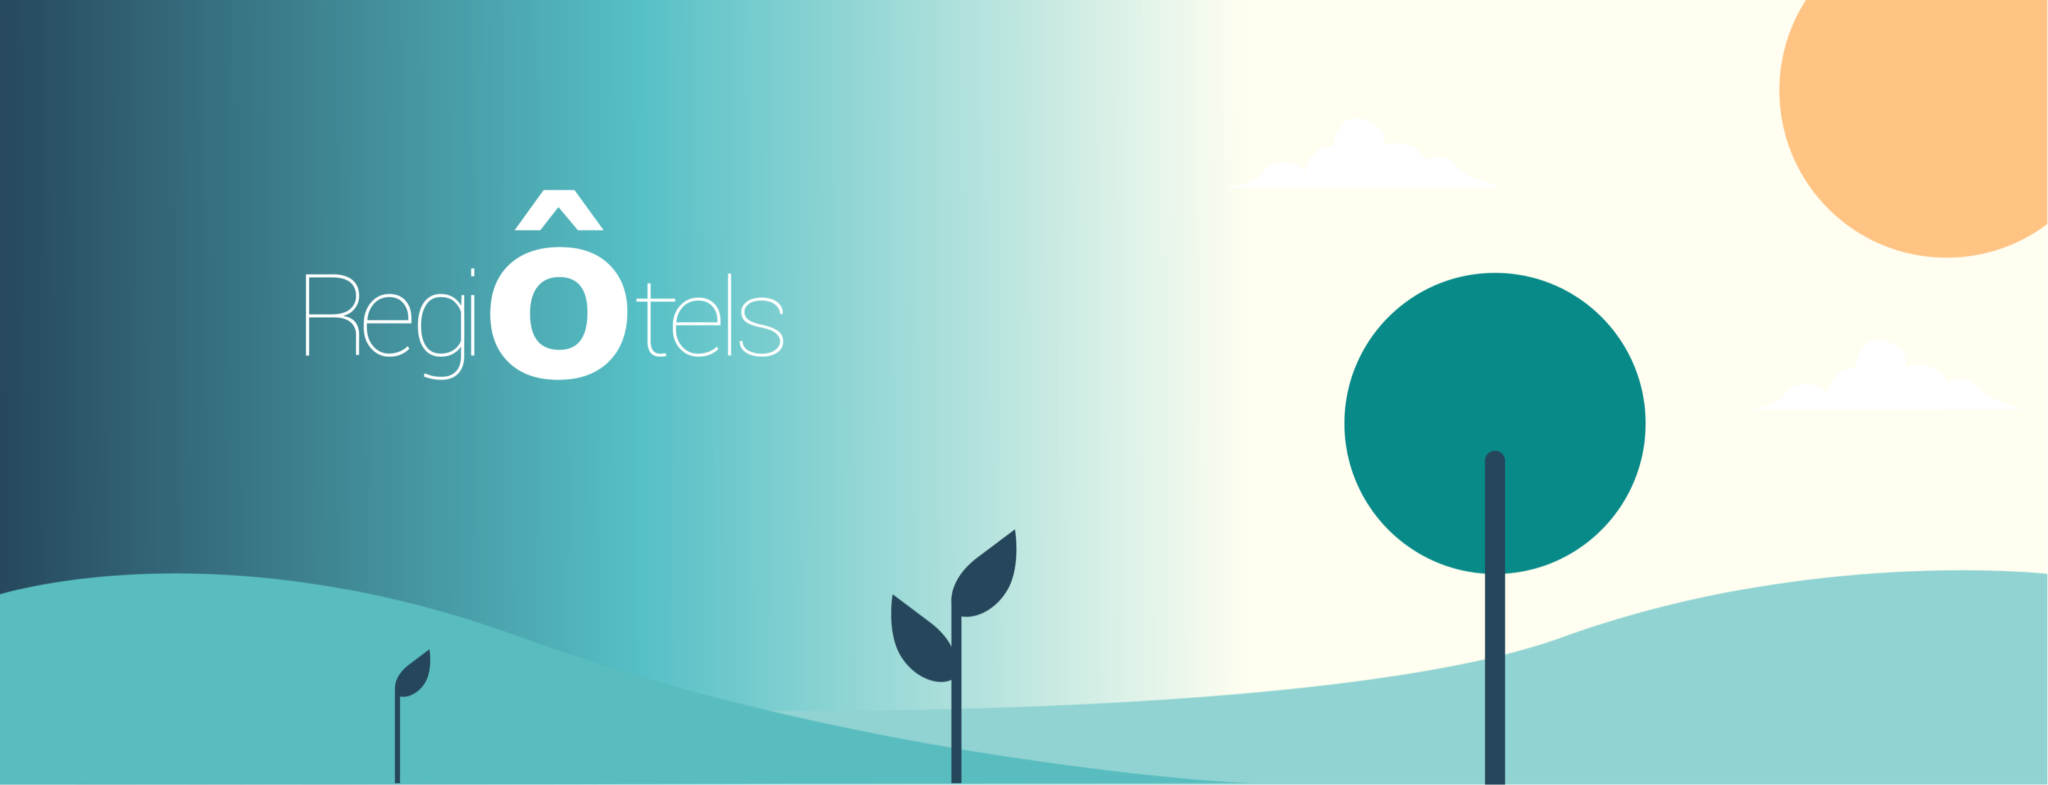 Illustration of a minimalist landscape with RegiÔtels' logo